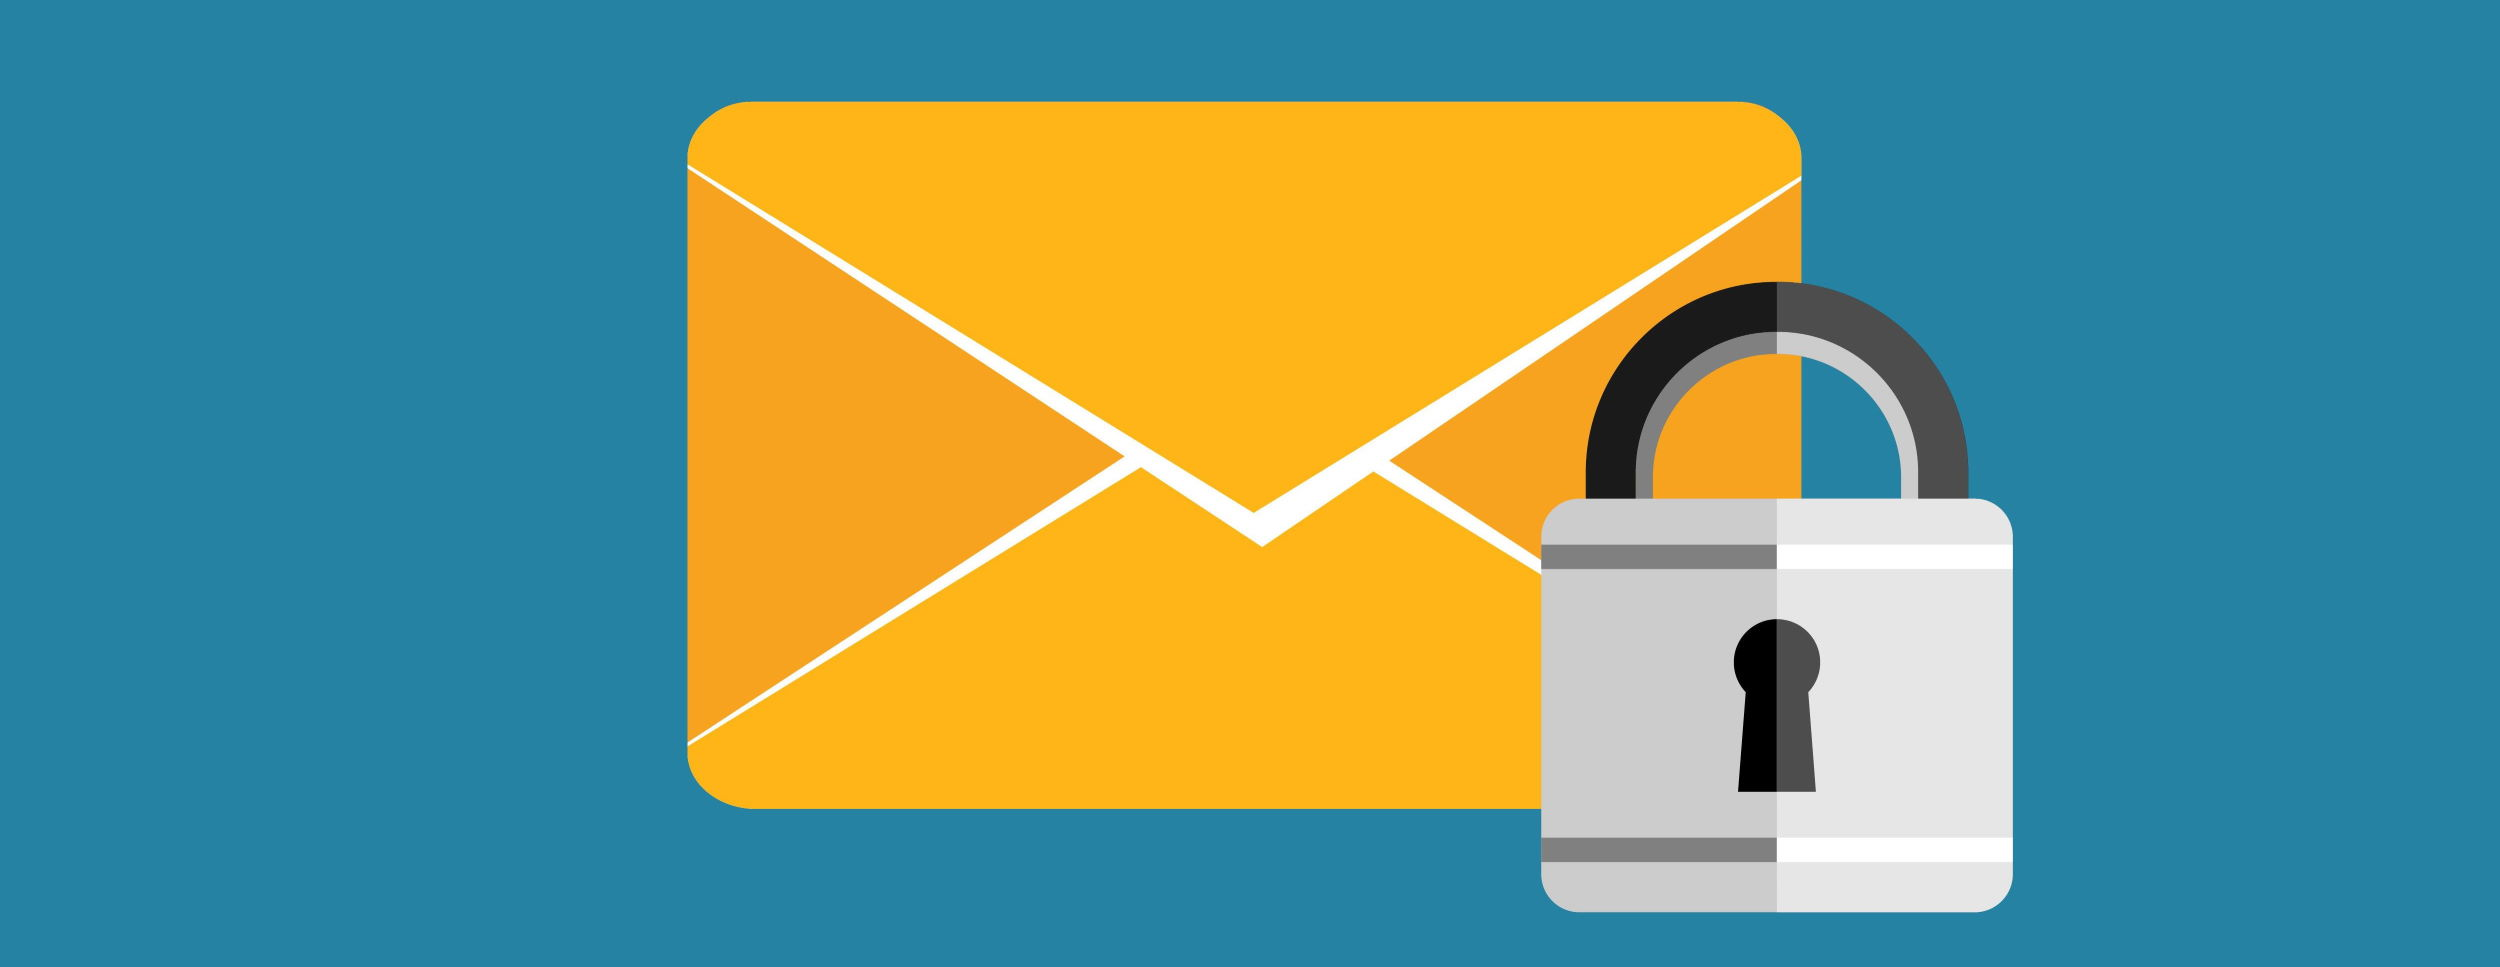 How safe is your inbox? 5 malicious email threats to watch out for